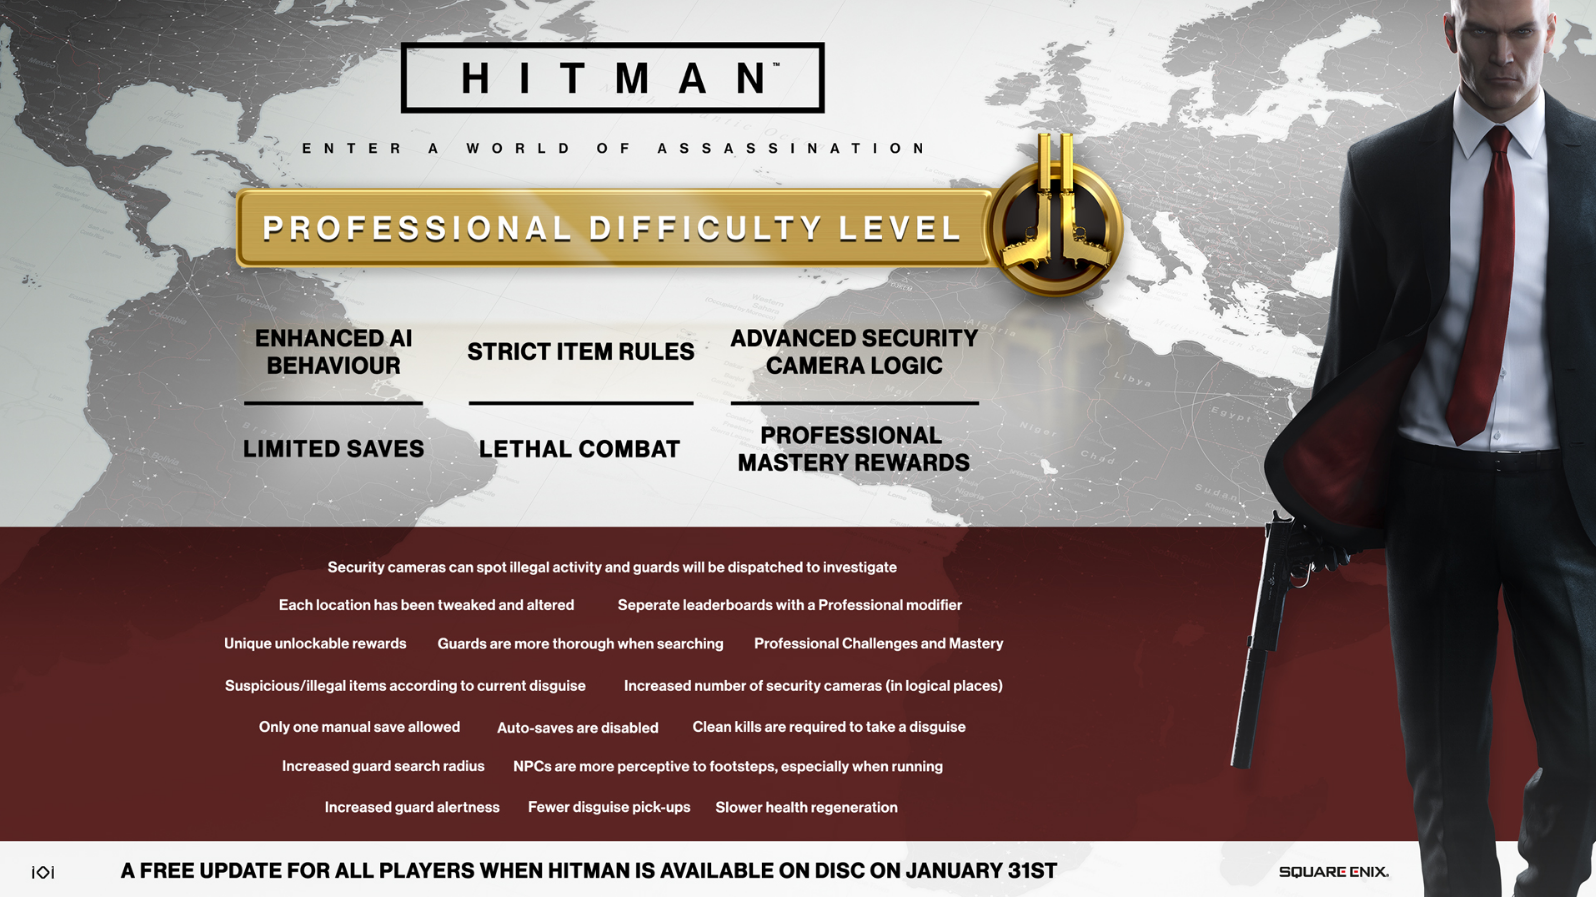 hitman professional difficulty level